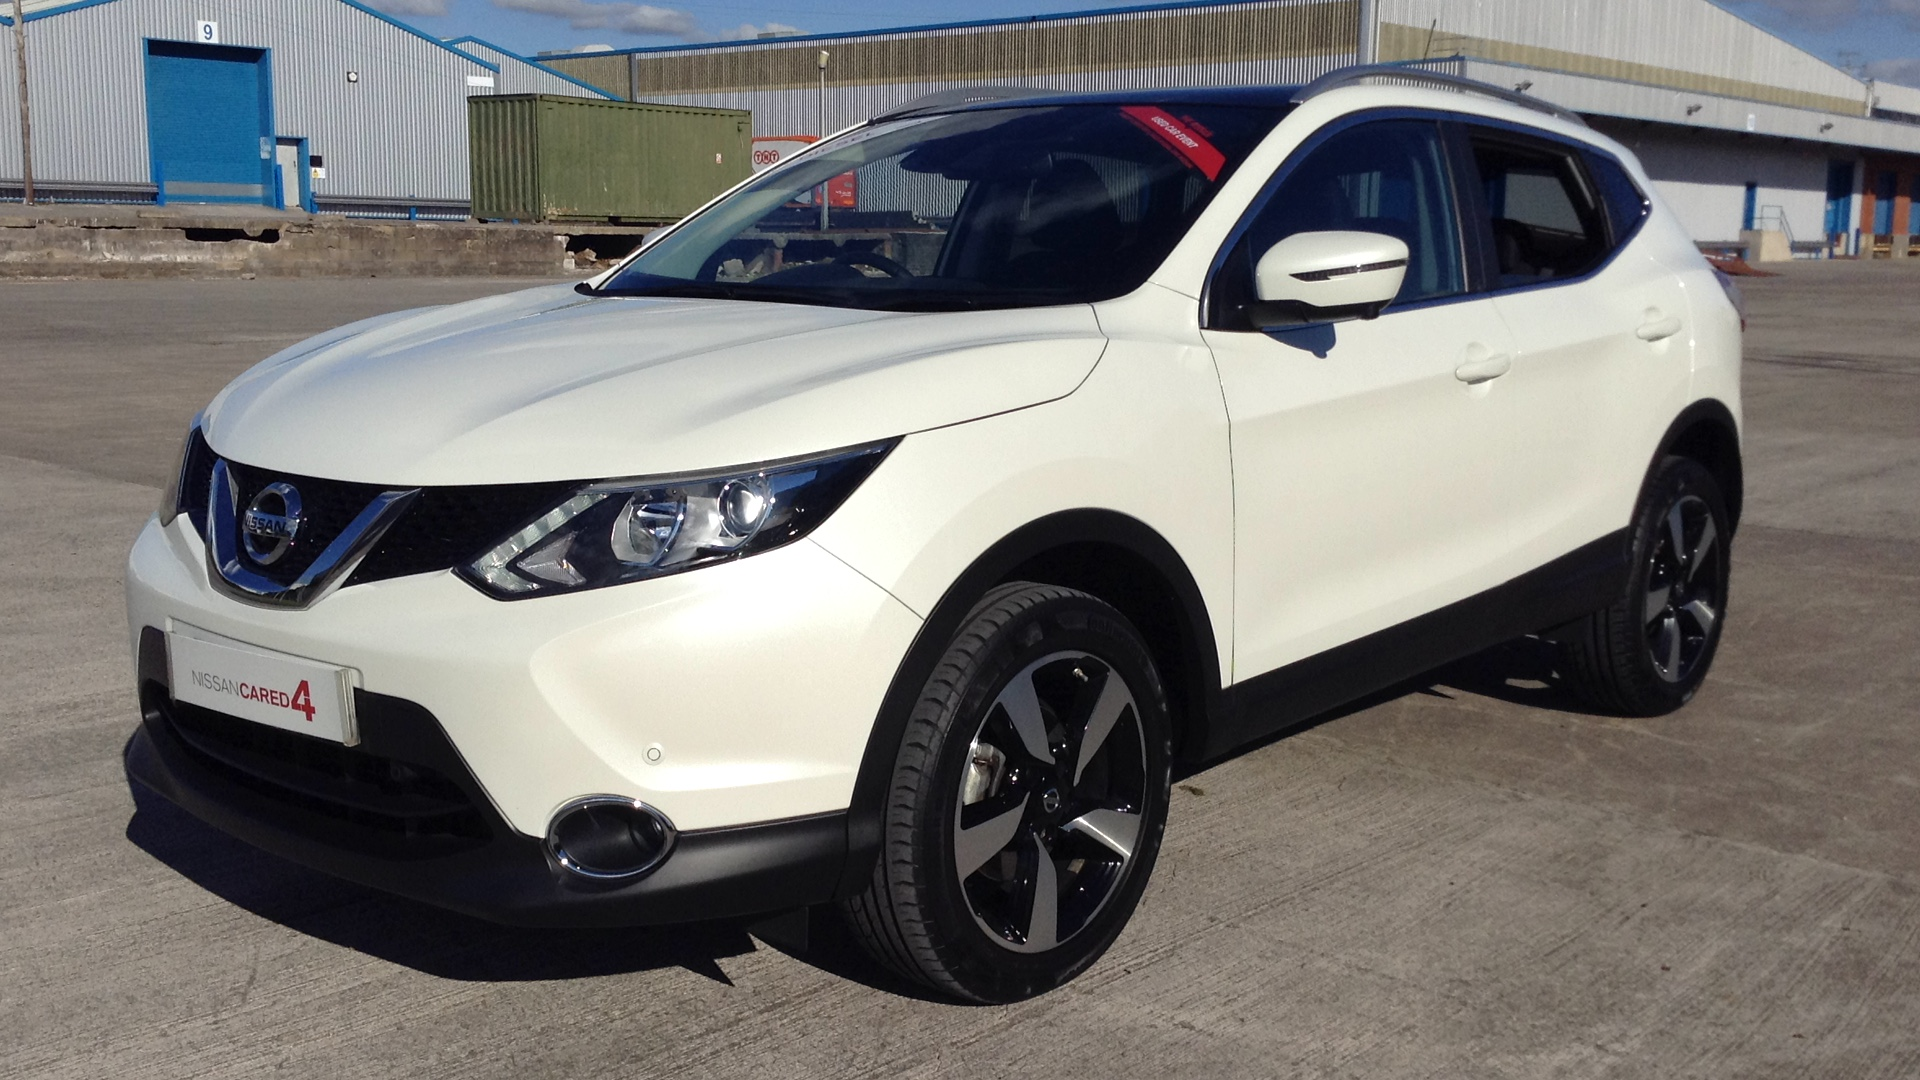 Nissan qashqai white bassetts nissan used cars nissan - Punch home design architectural series 18 ...